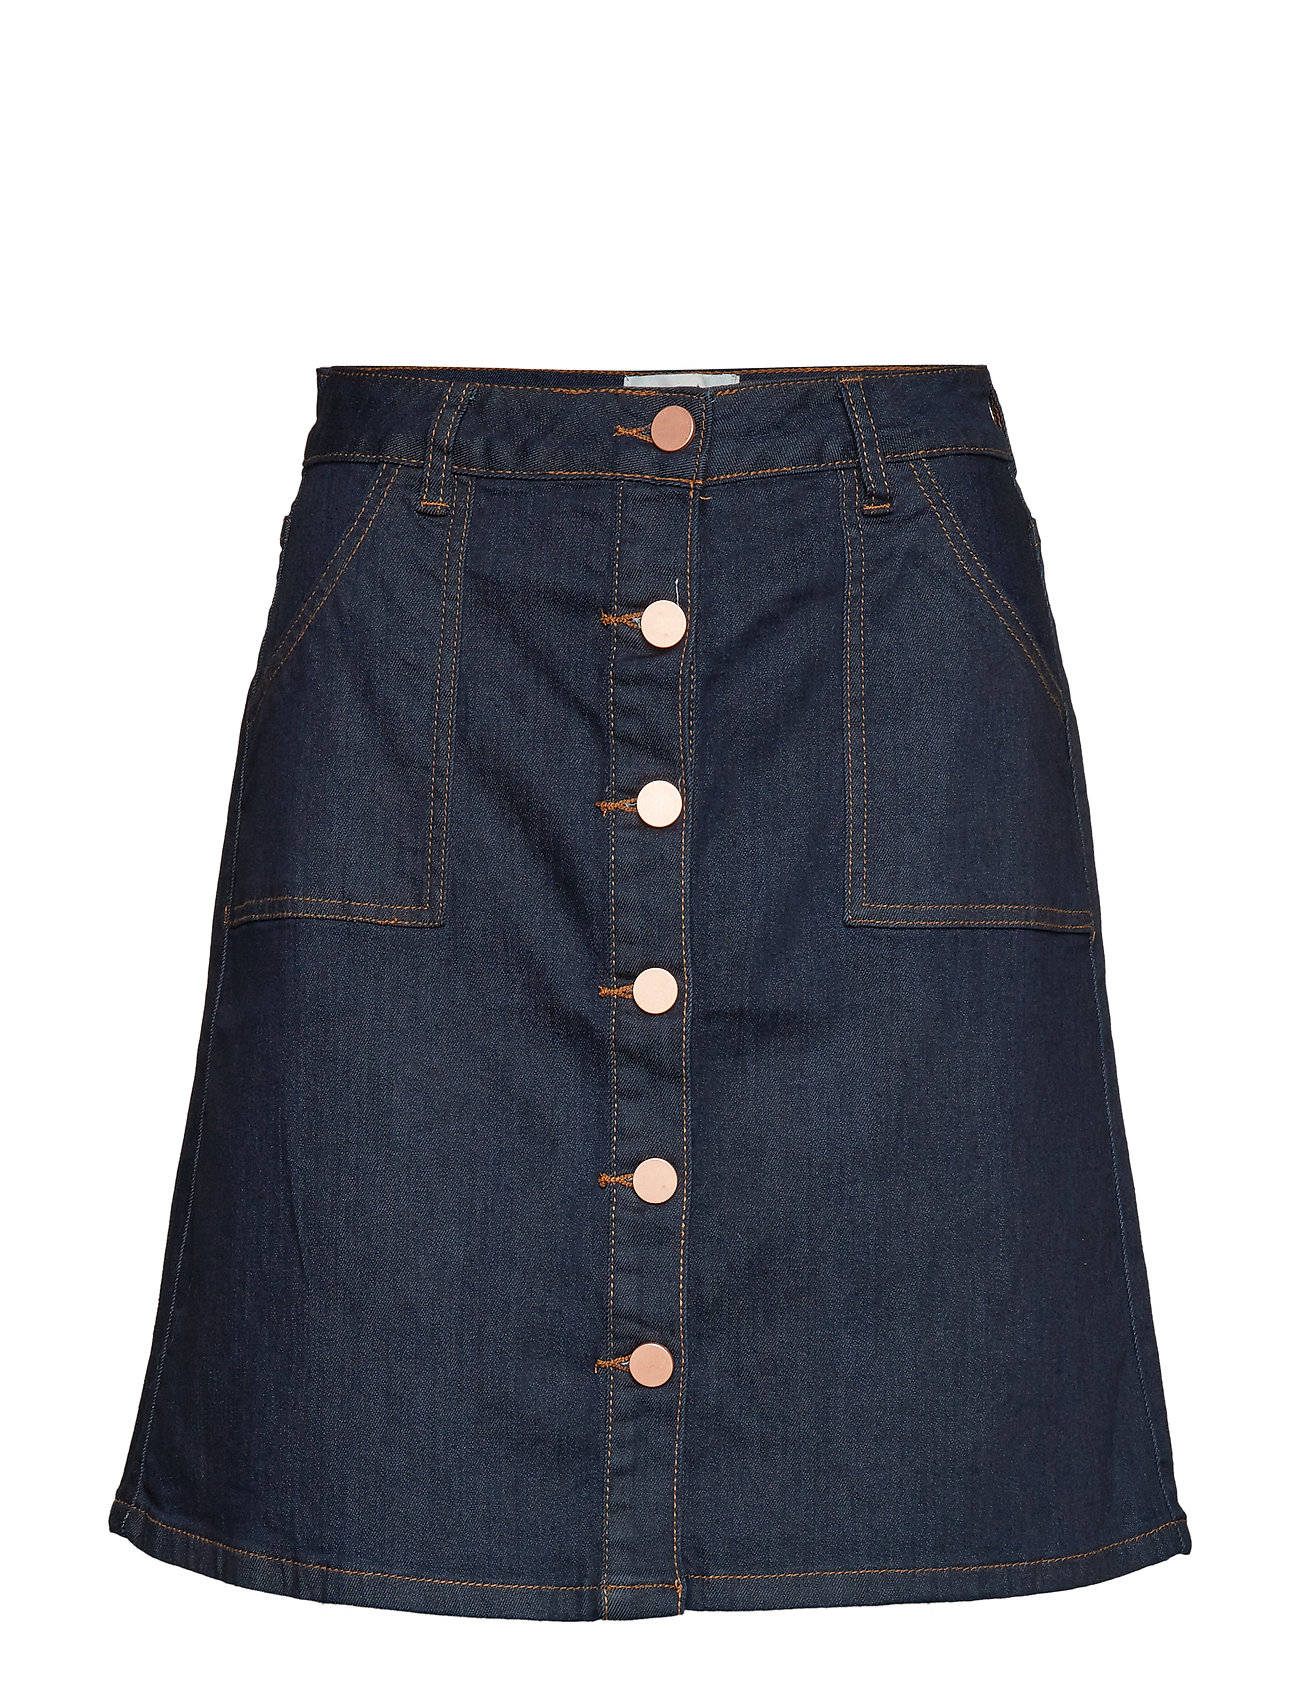 Loraine Loraine Denim DenimMinus DenimMinus Loraine Denim Skirtdark Denim DenimMinus Skirtdark Skirtdark Nwm8y0OvnP